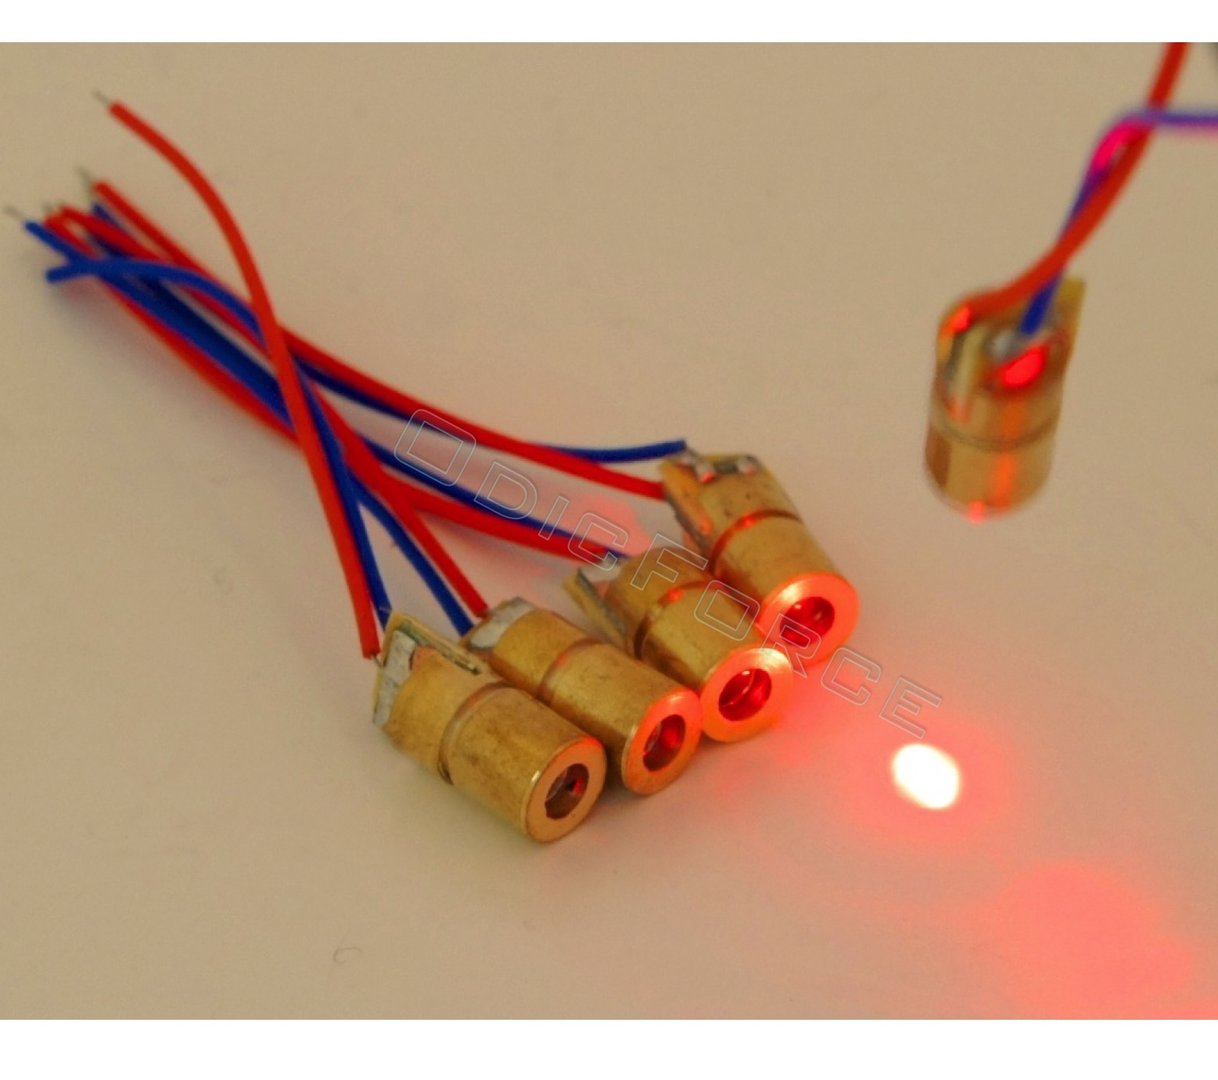 Focusing 6mm Micro Red Laser Module (3V, 5-pack)